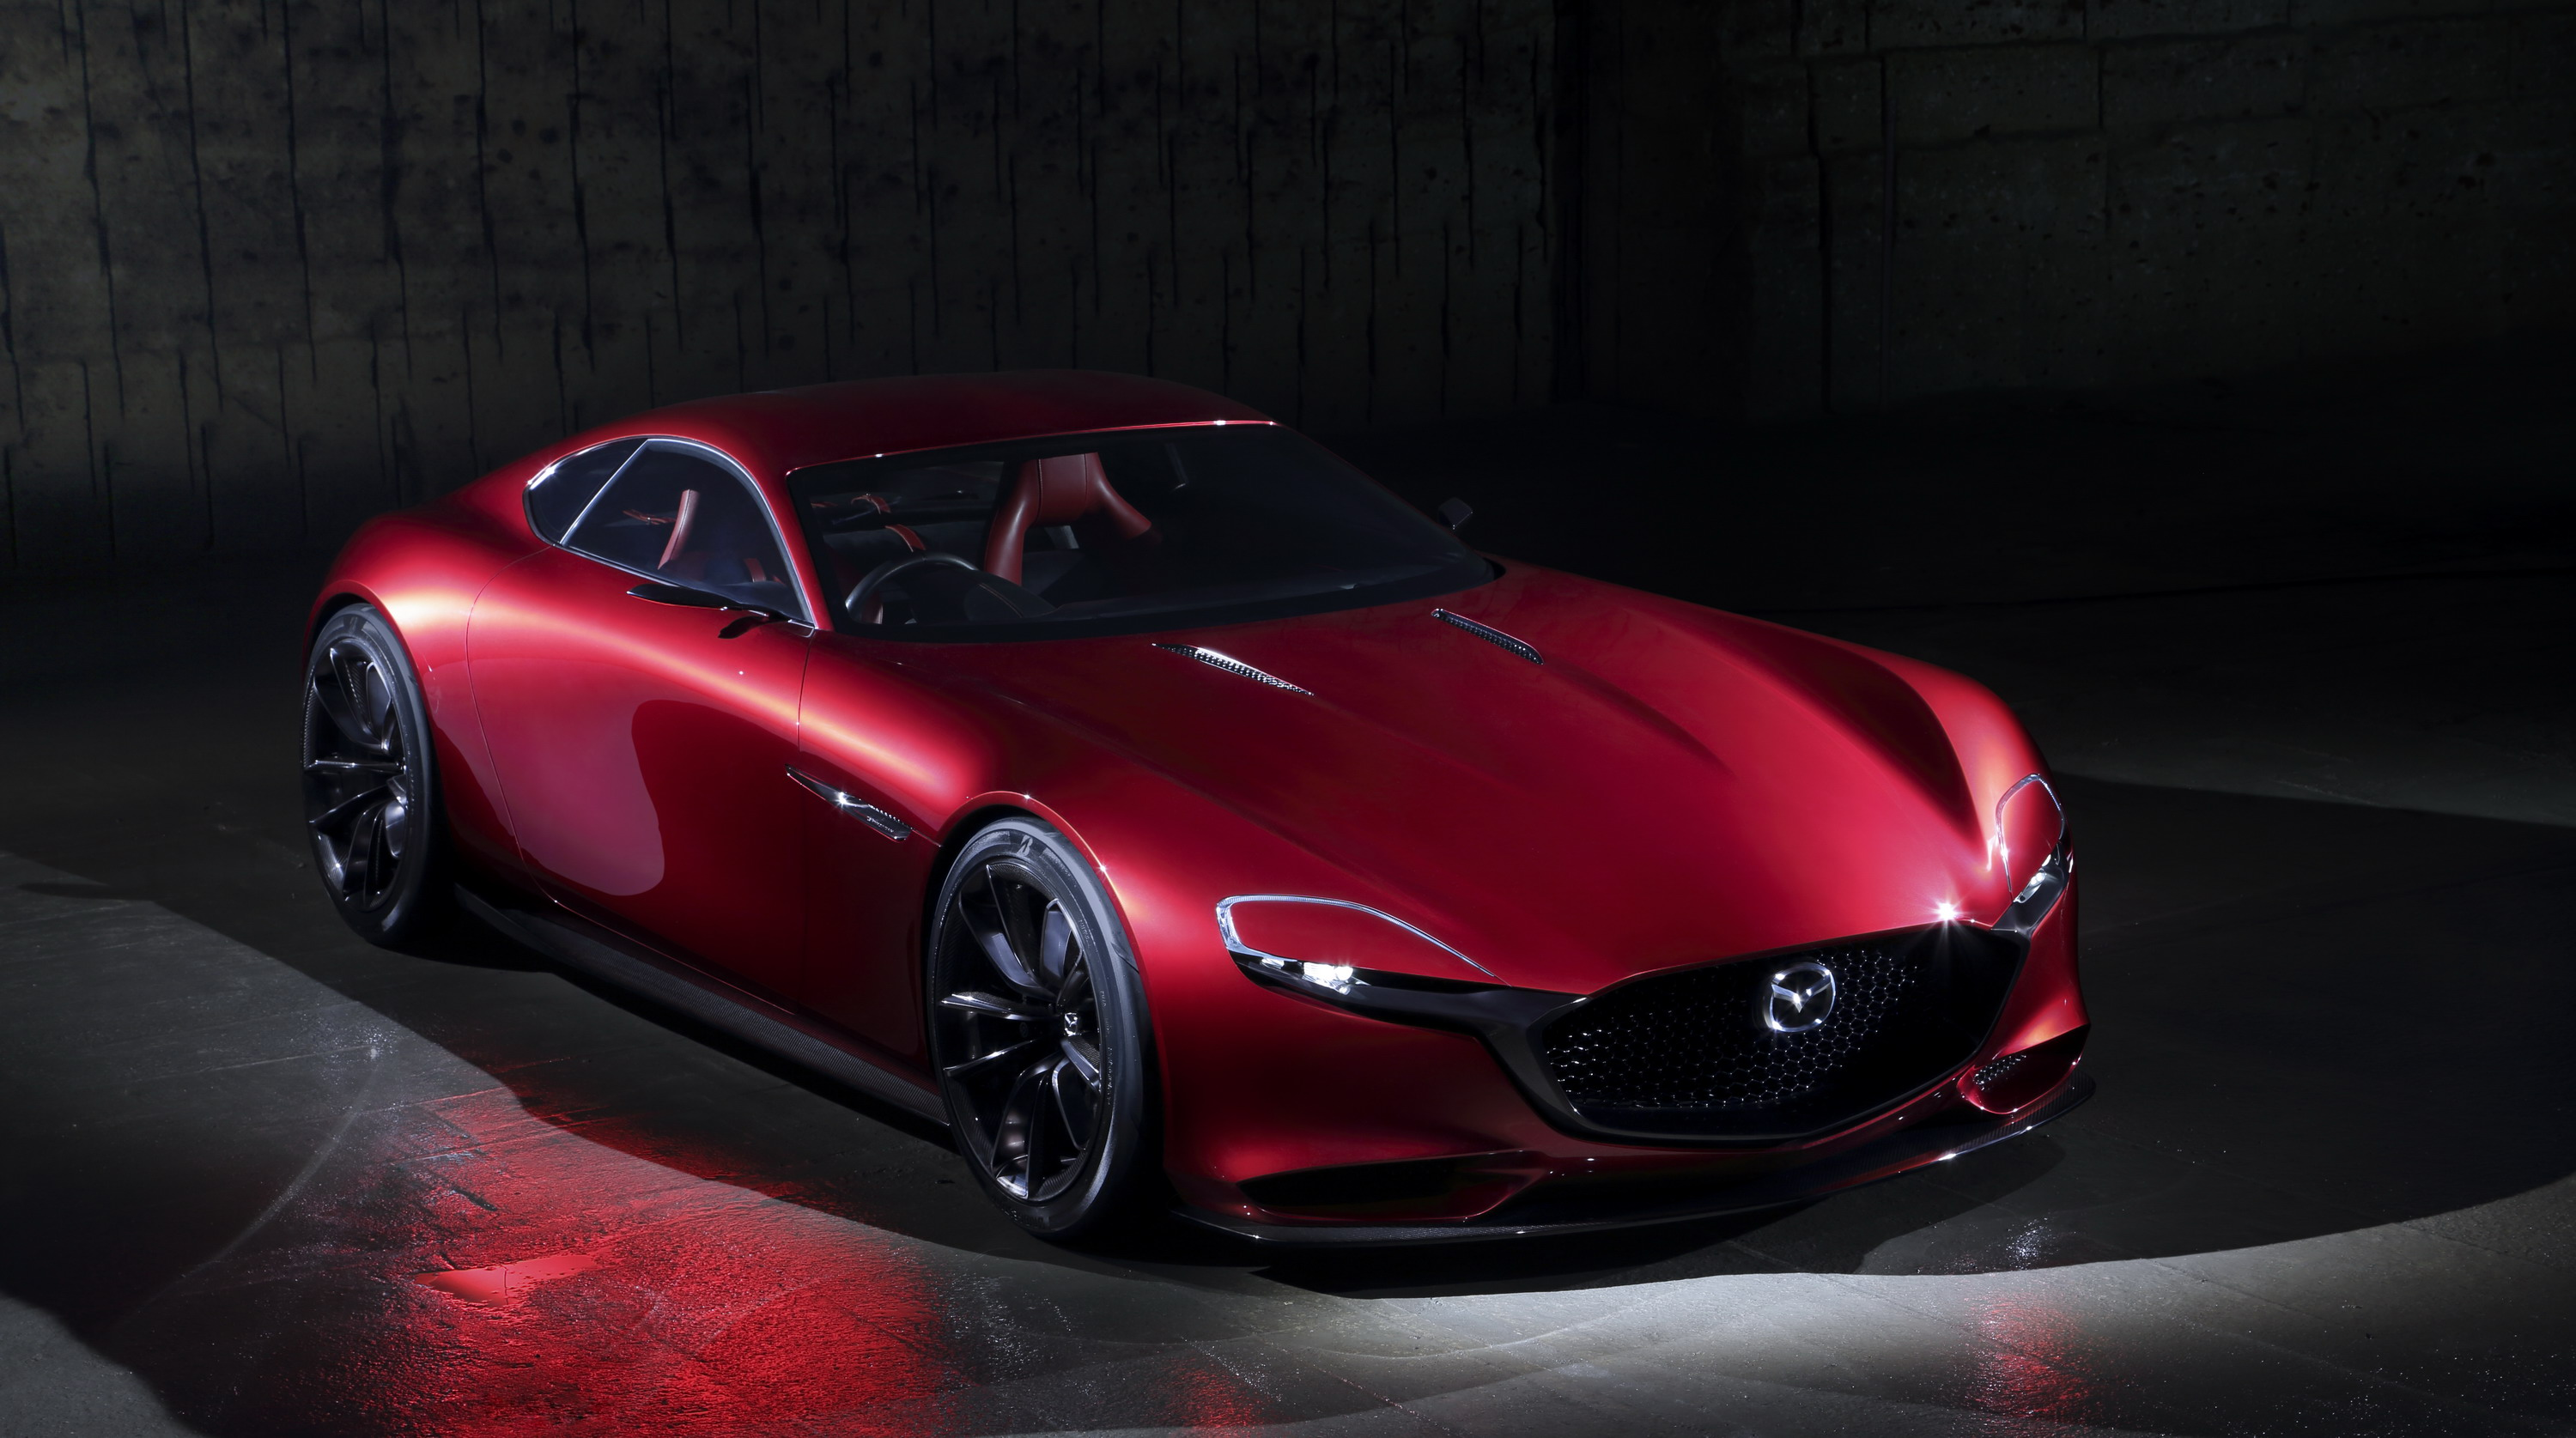 https://pictures.topspeed.com/IMG/jpg/201510/mazda-rx-vision-conc-7.jpg